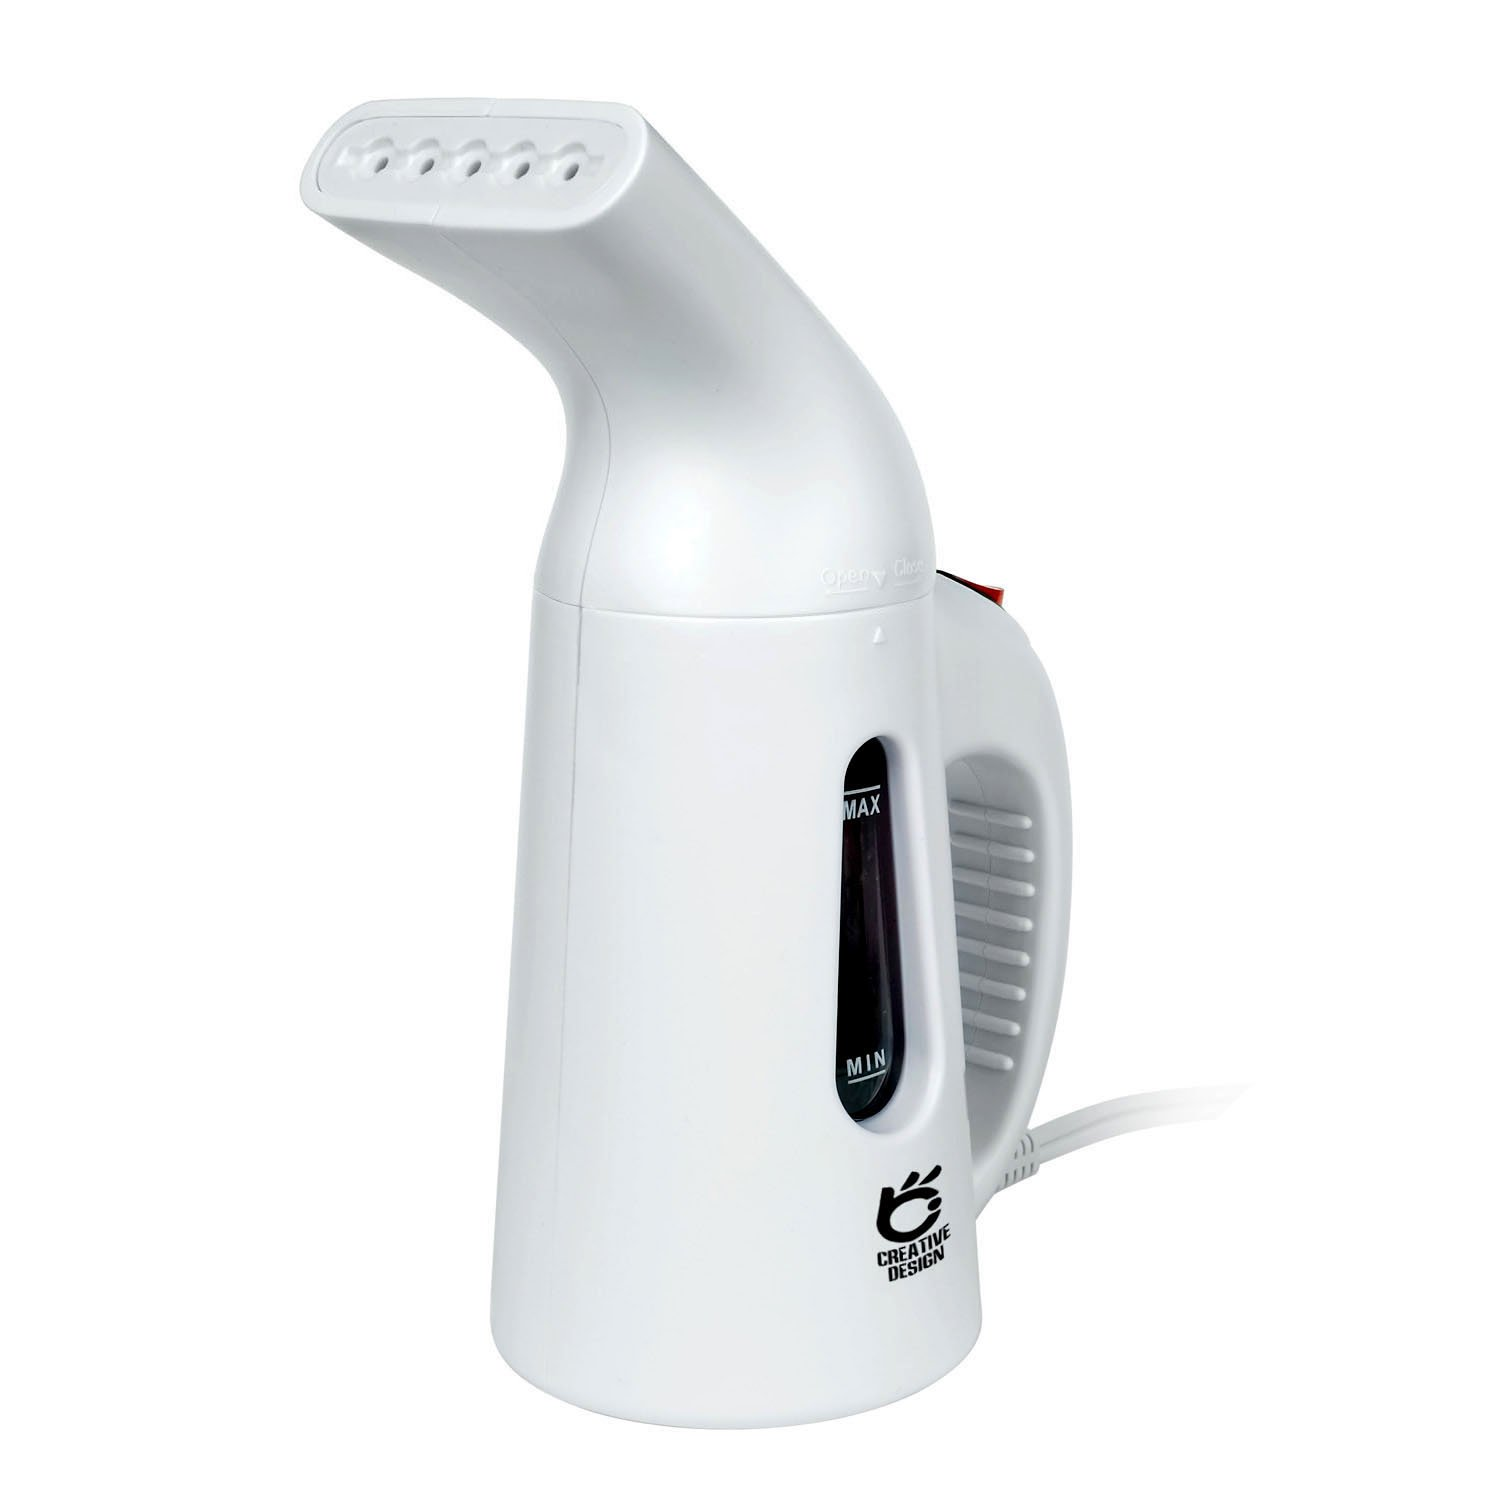 CREATIVE DESIGN Garment Steamer, Handheld Portable Fabric Steamer, Mini Fast Heat-up Steamer for Home and Travel (White)